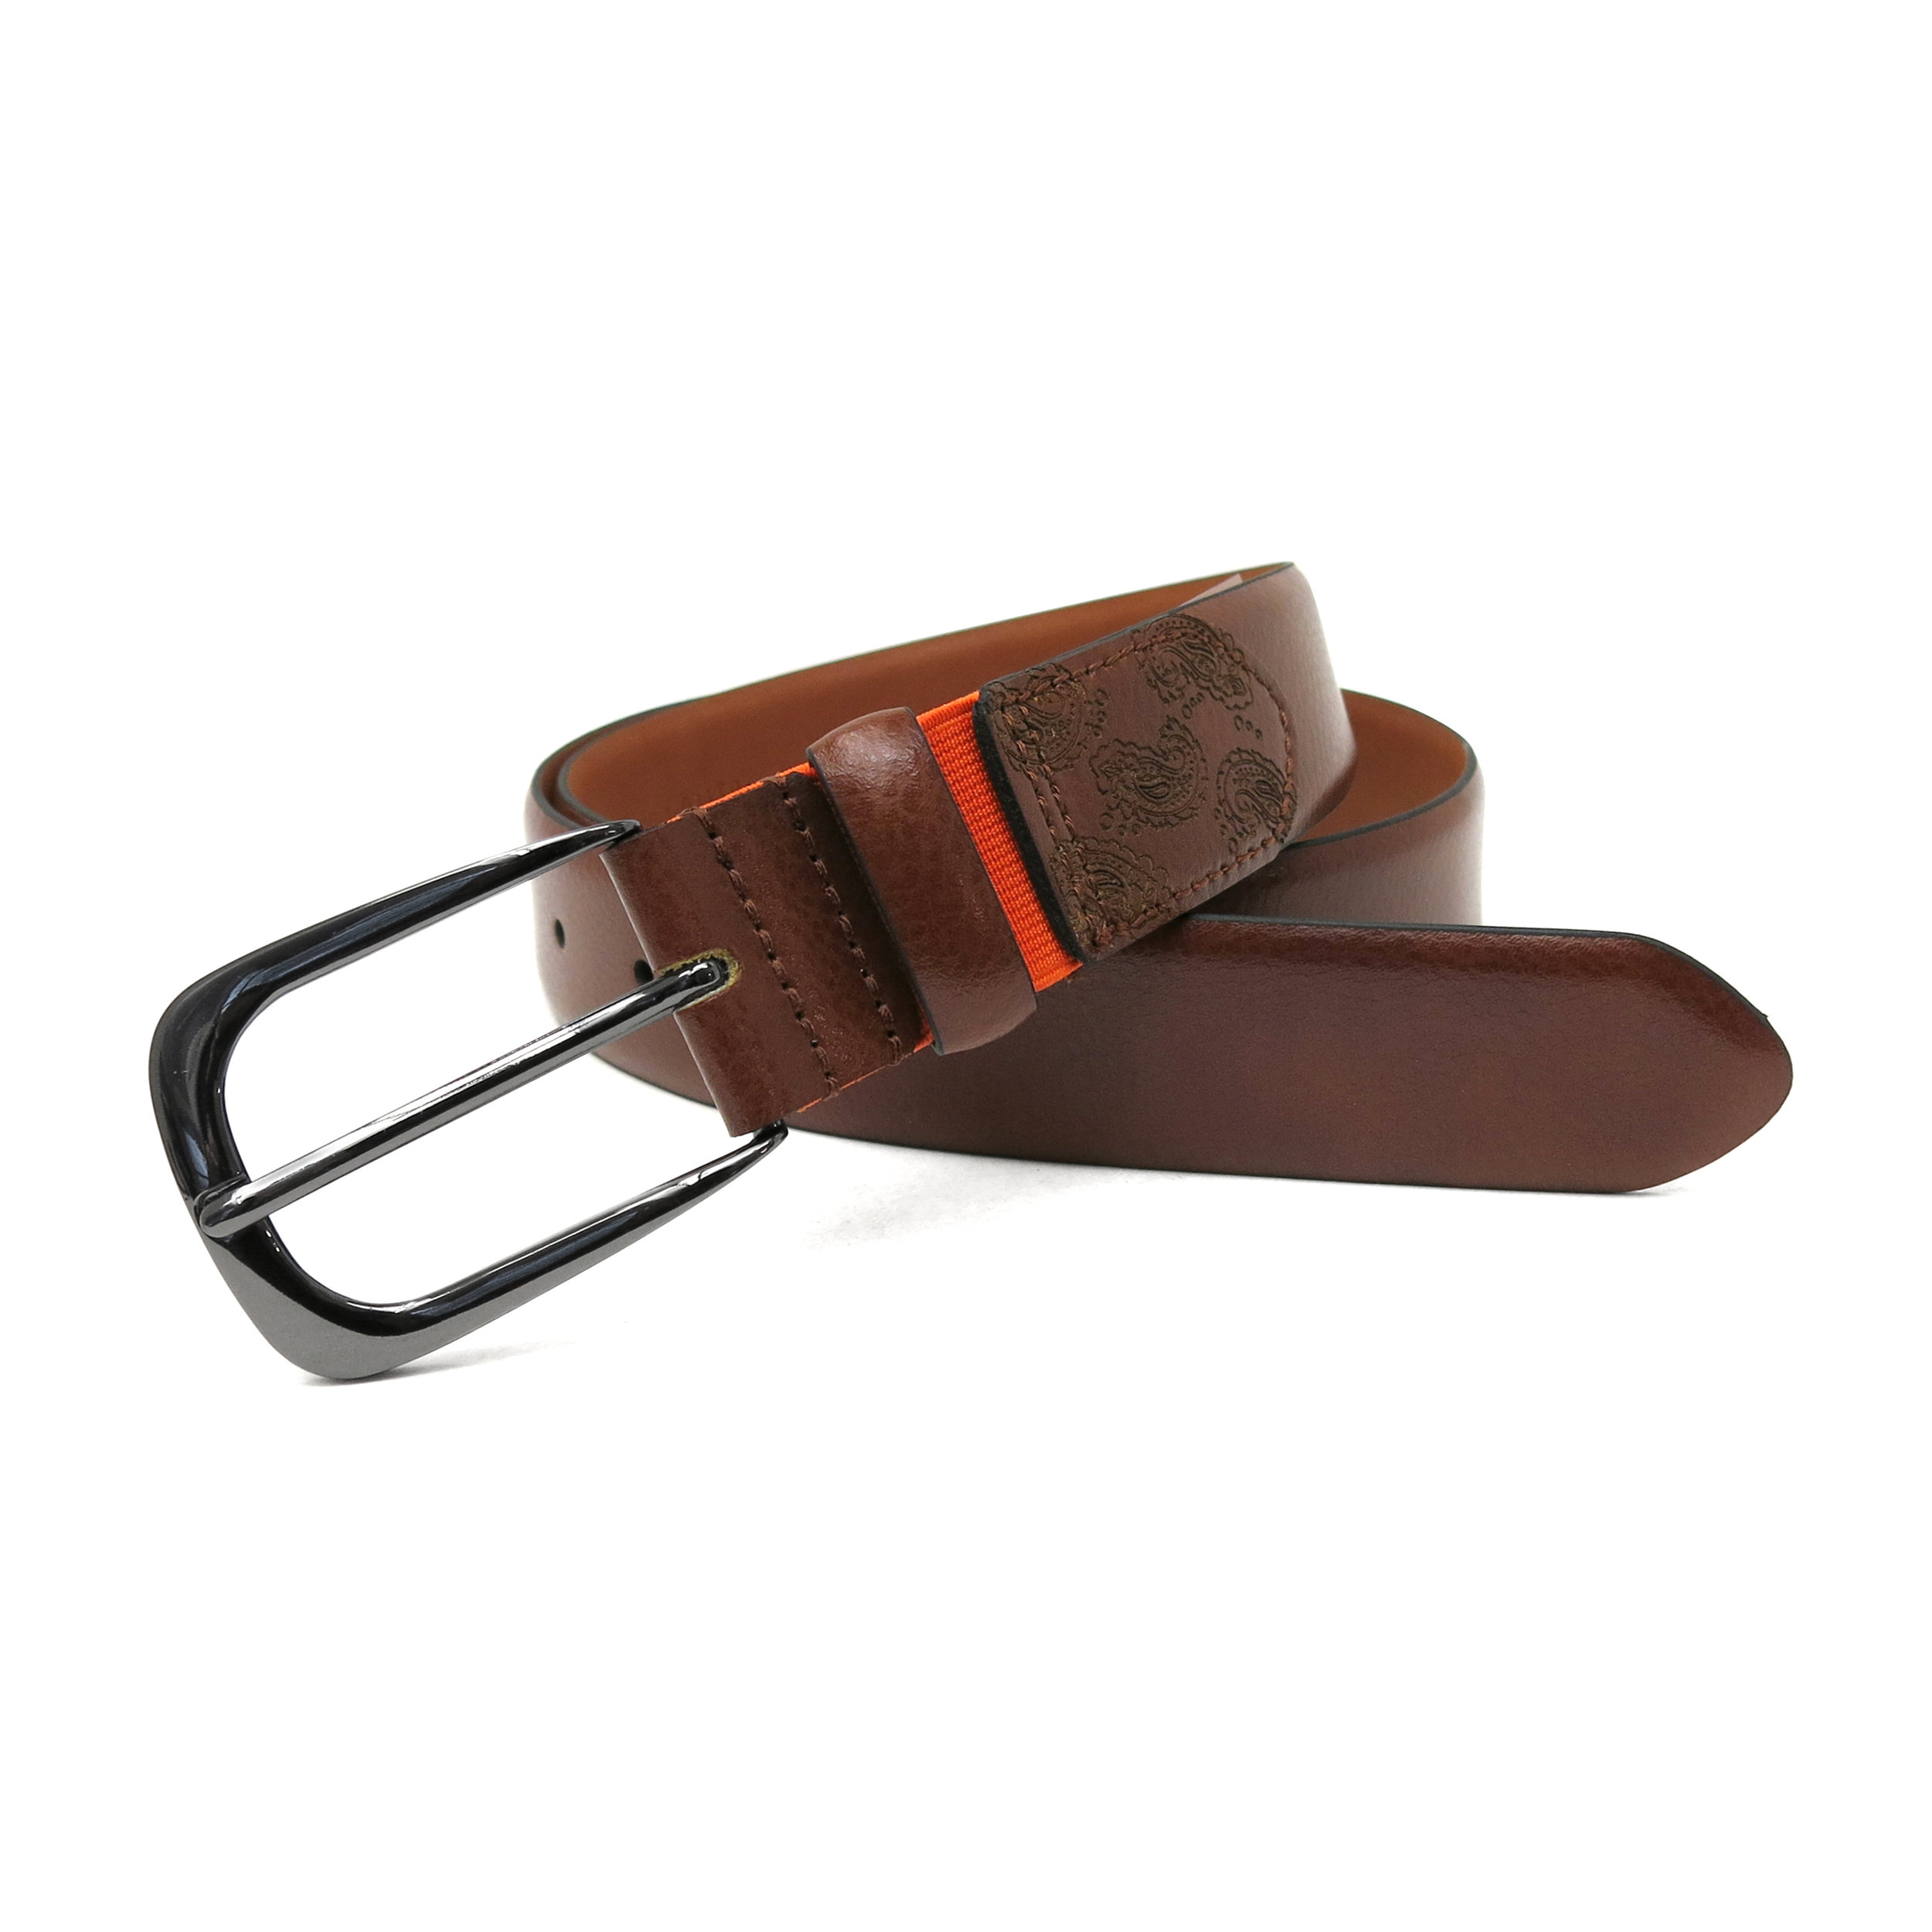 Stretch Belt - Elastic piece is hidden under the keeper Stretches up to 1 inch